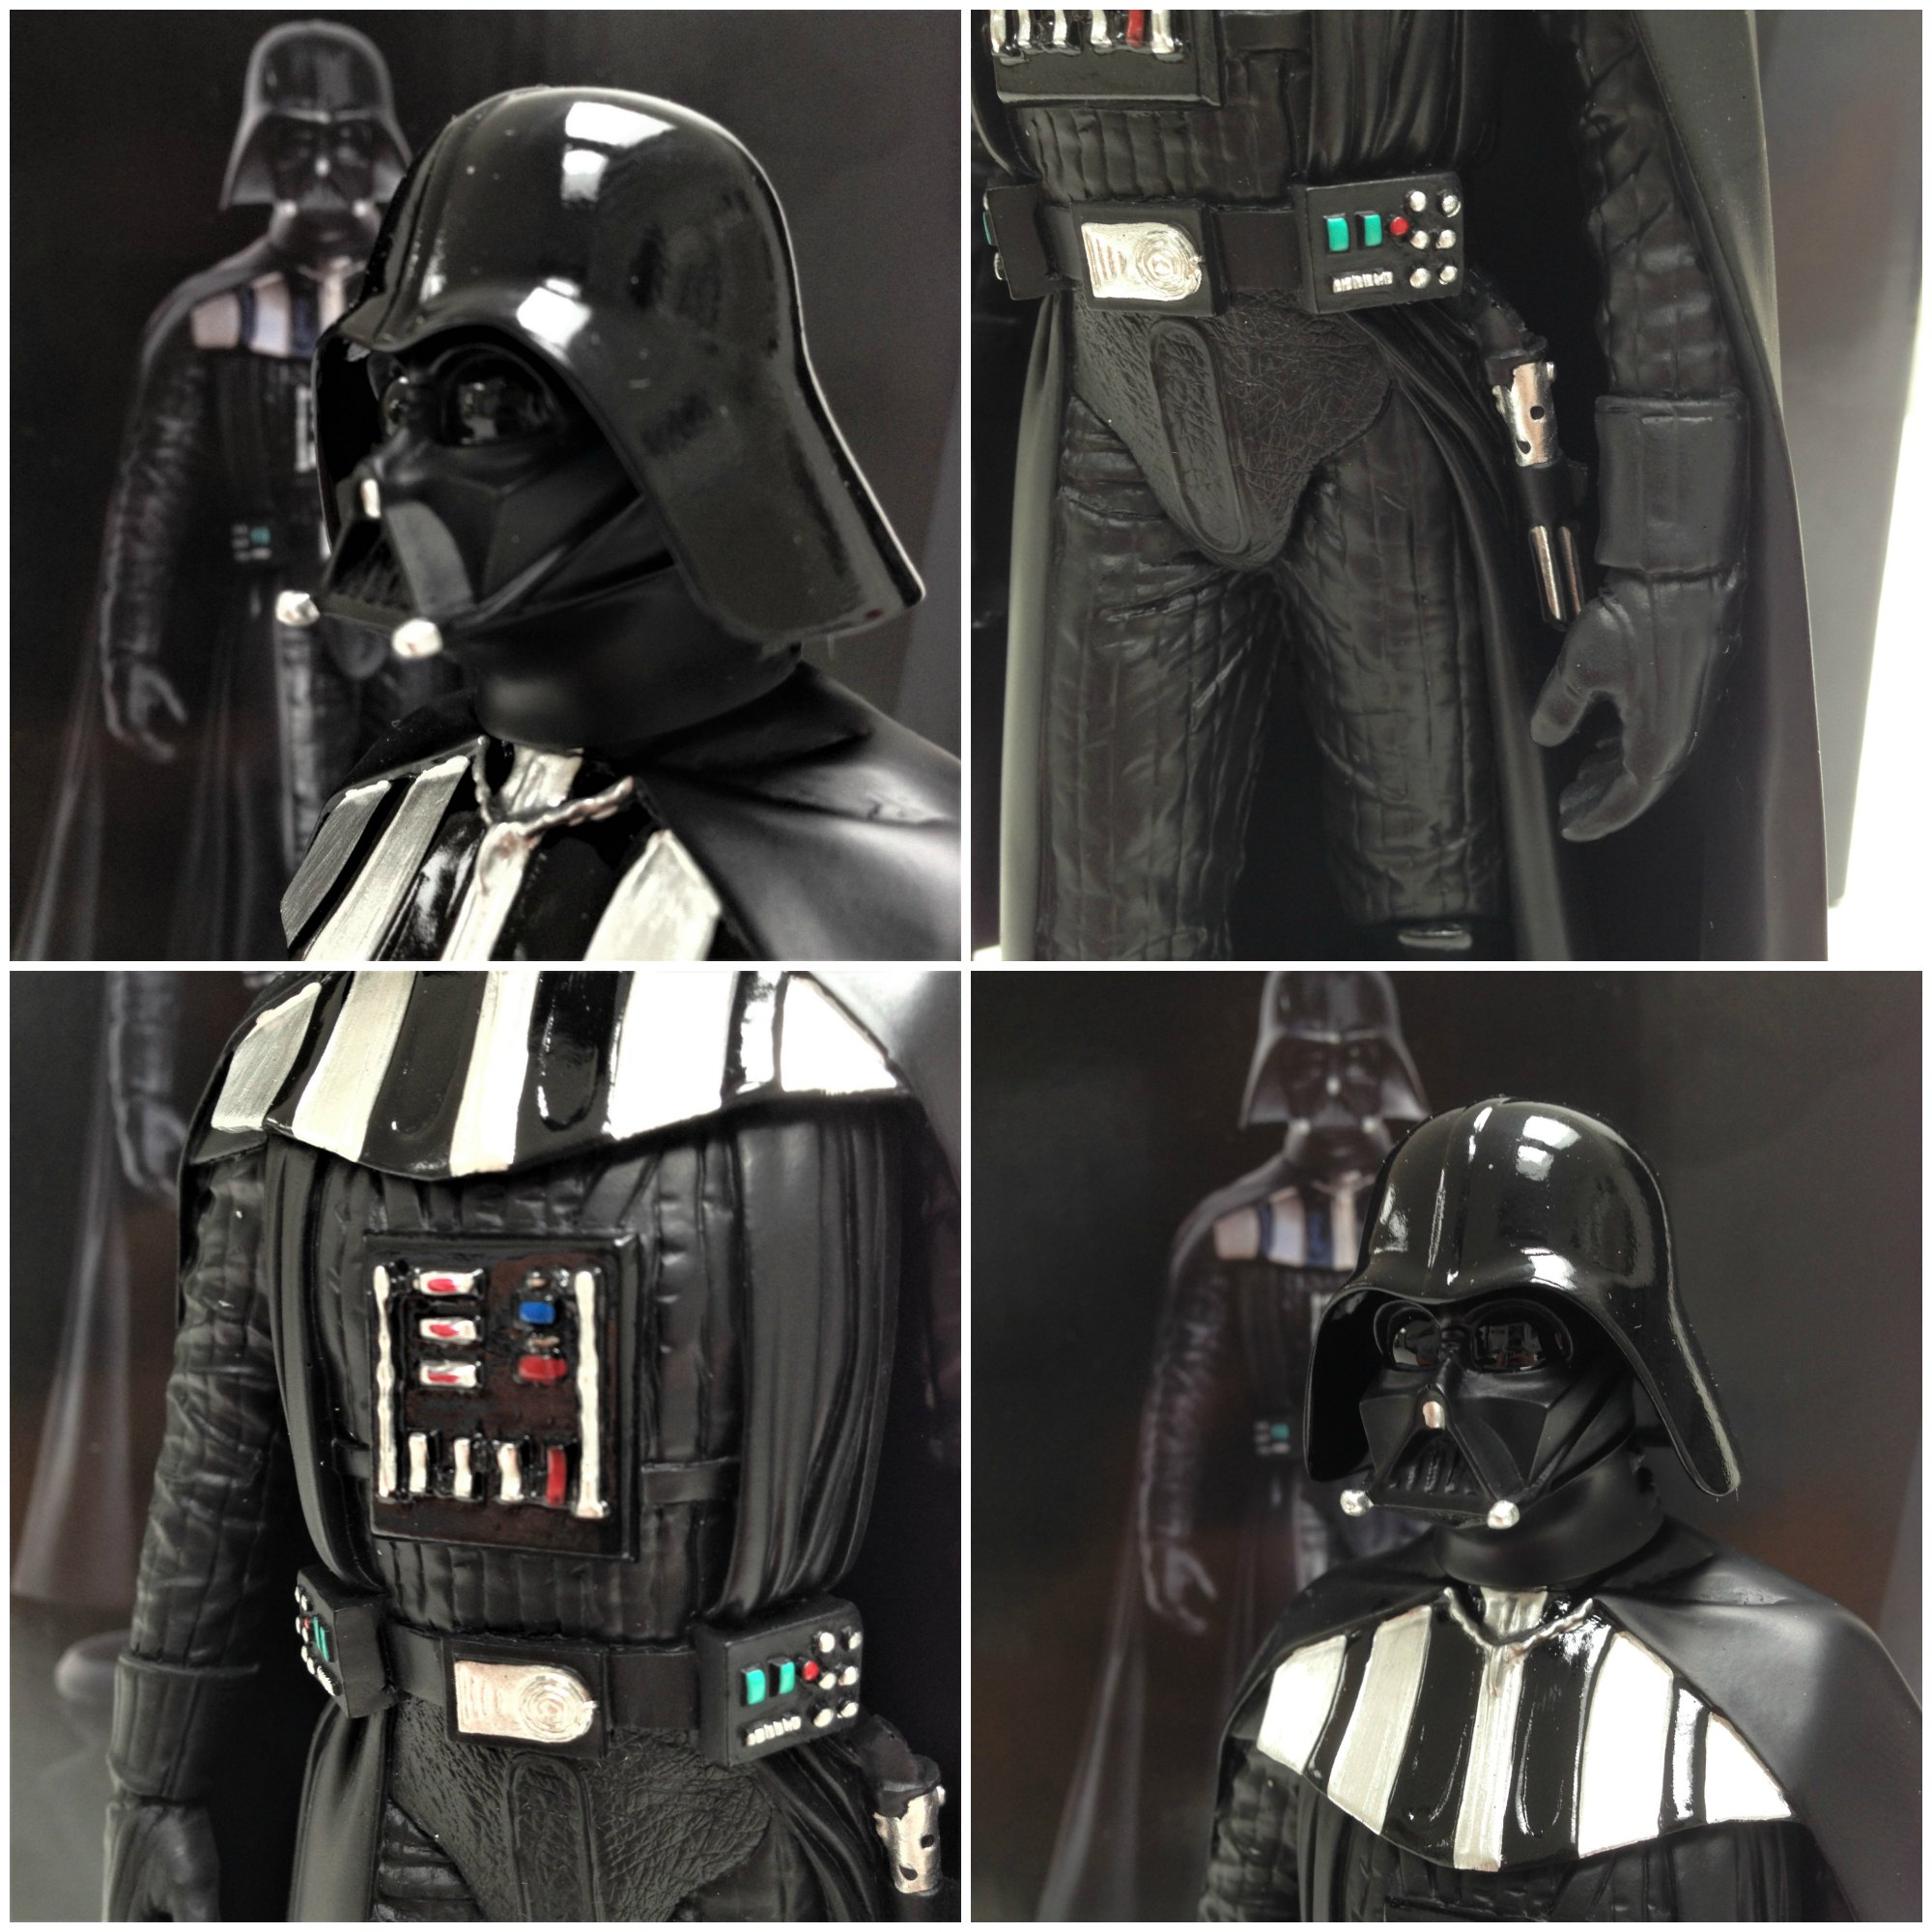 Darth Vader - Attakus Elite Colection - Star Wars - Wendros - Merchandise - Darth Vader-figur - Fiktion & Kultur (1)